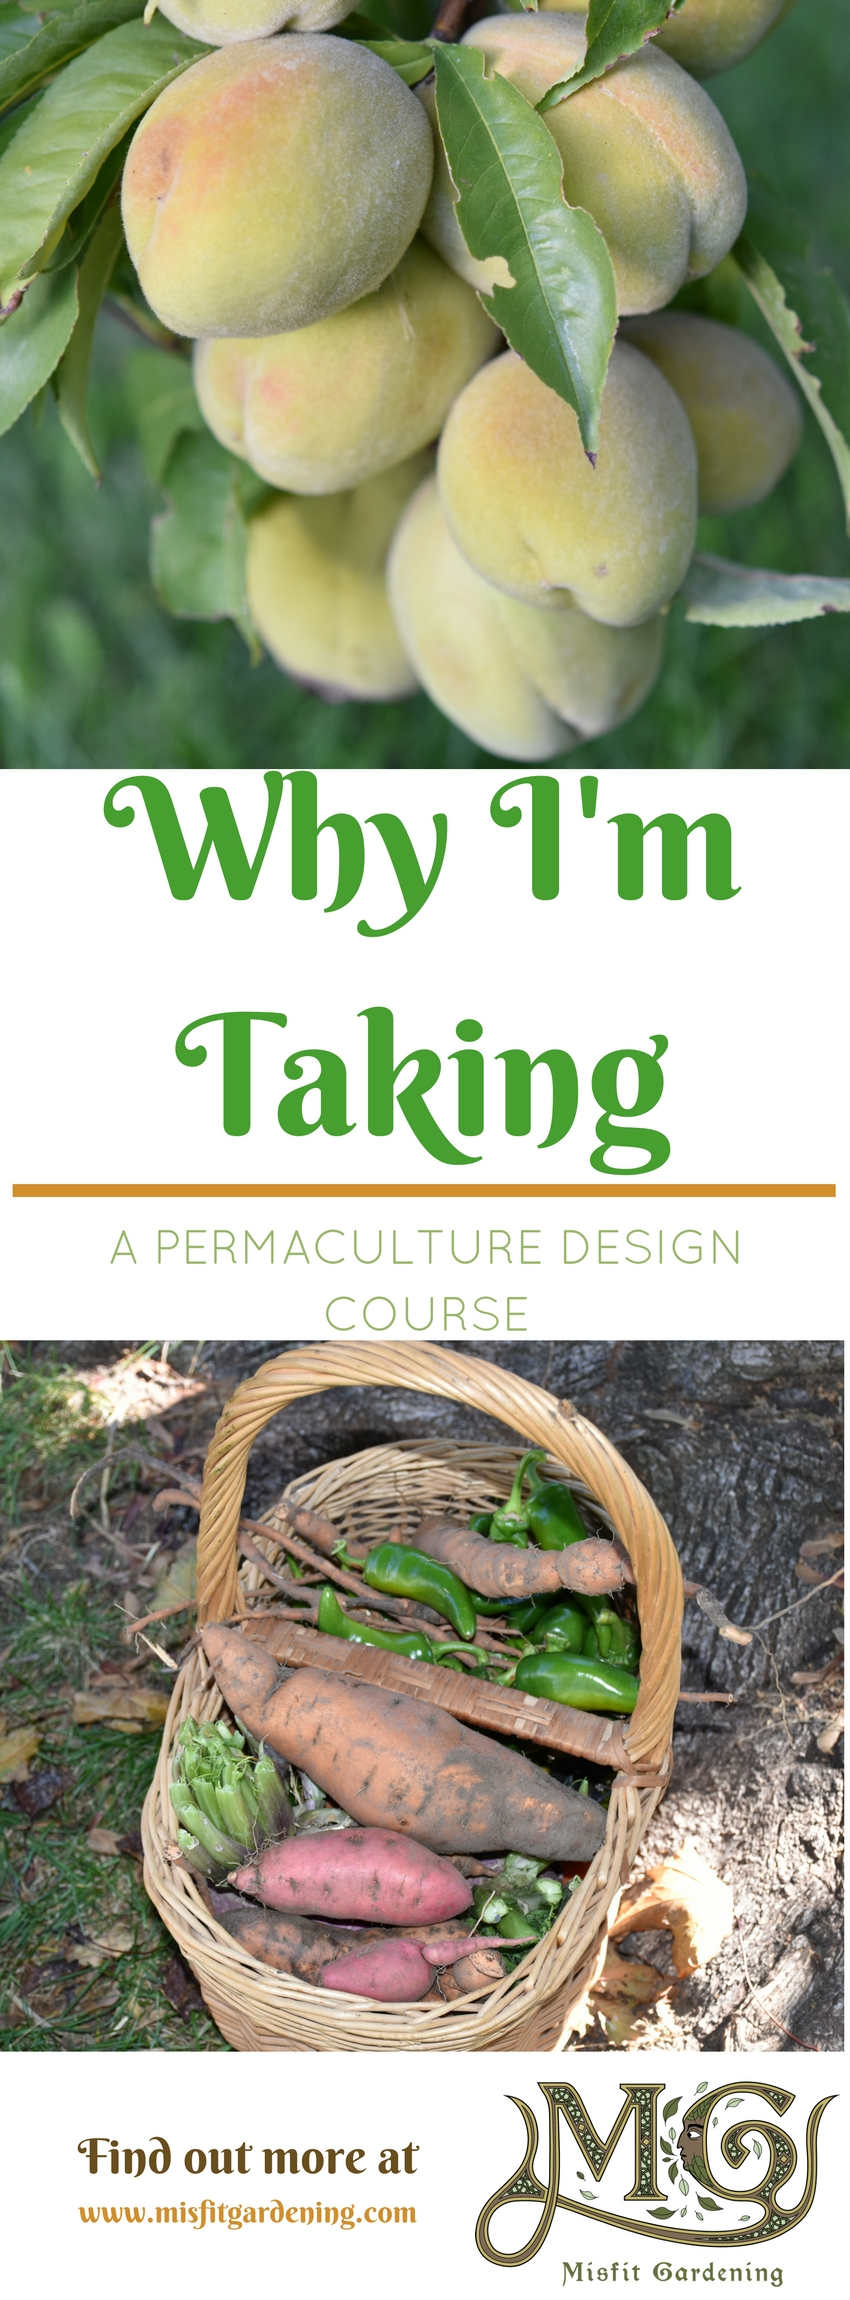 Find out Why I'm taking a Permaculture Design Course. Click to find out more or pin it and save for later